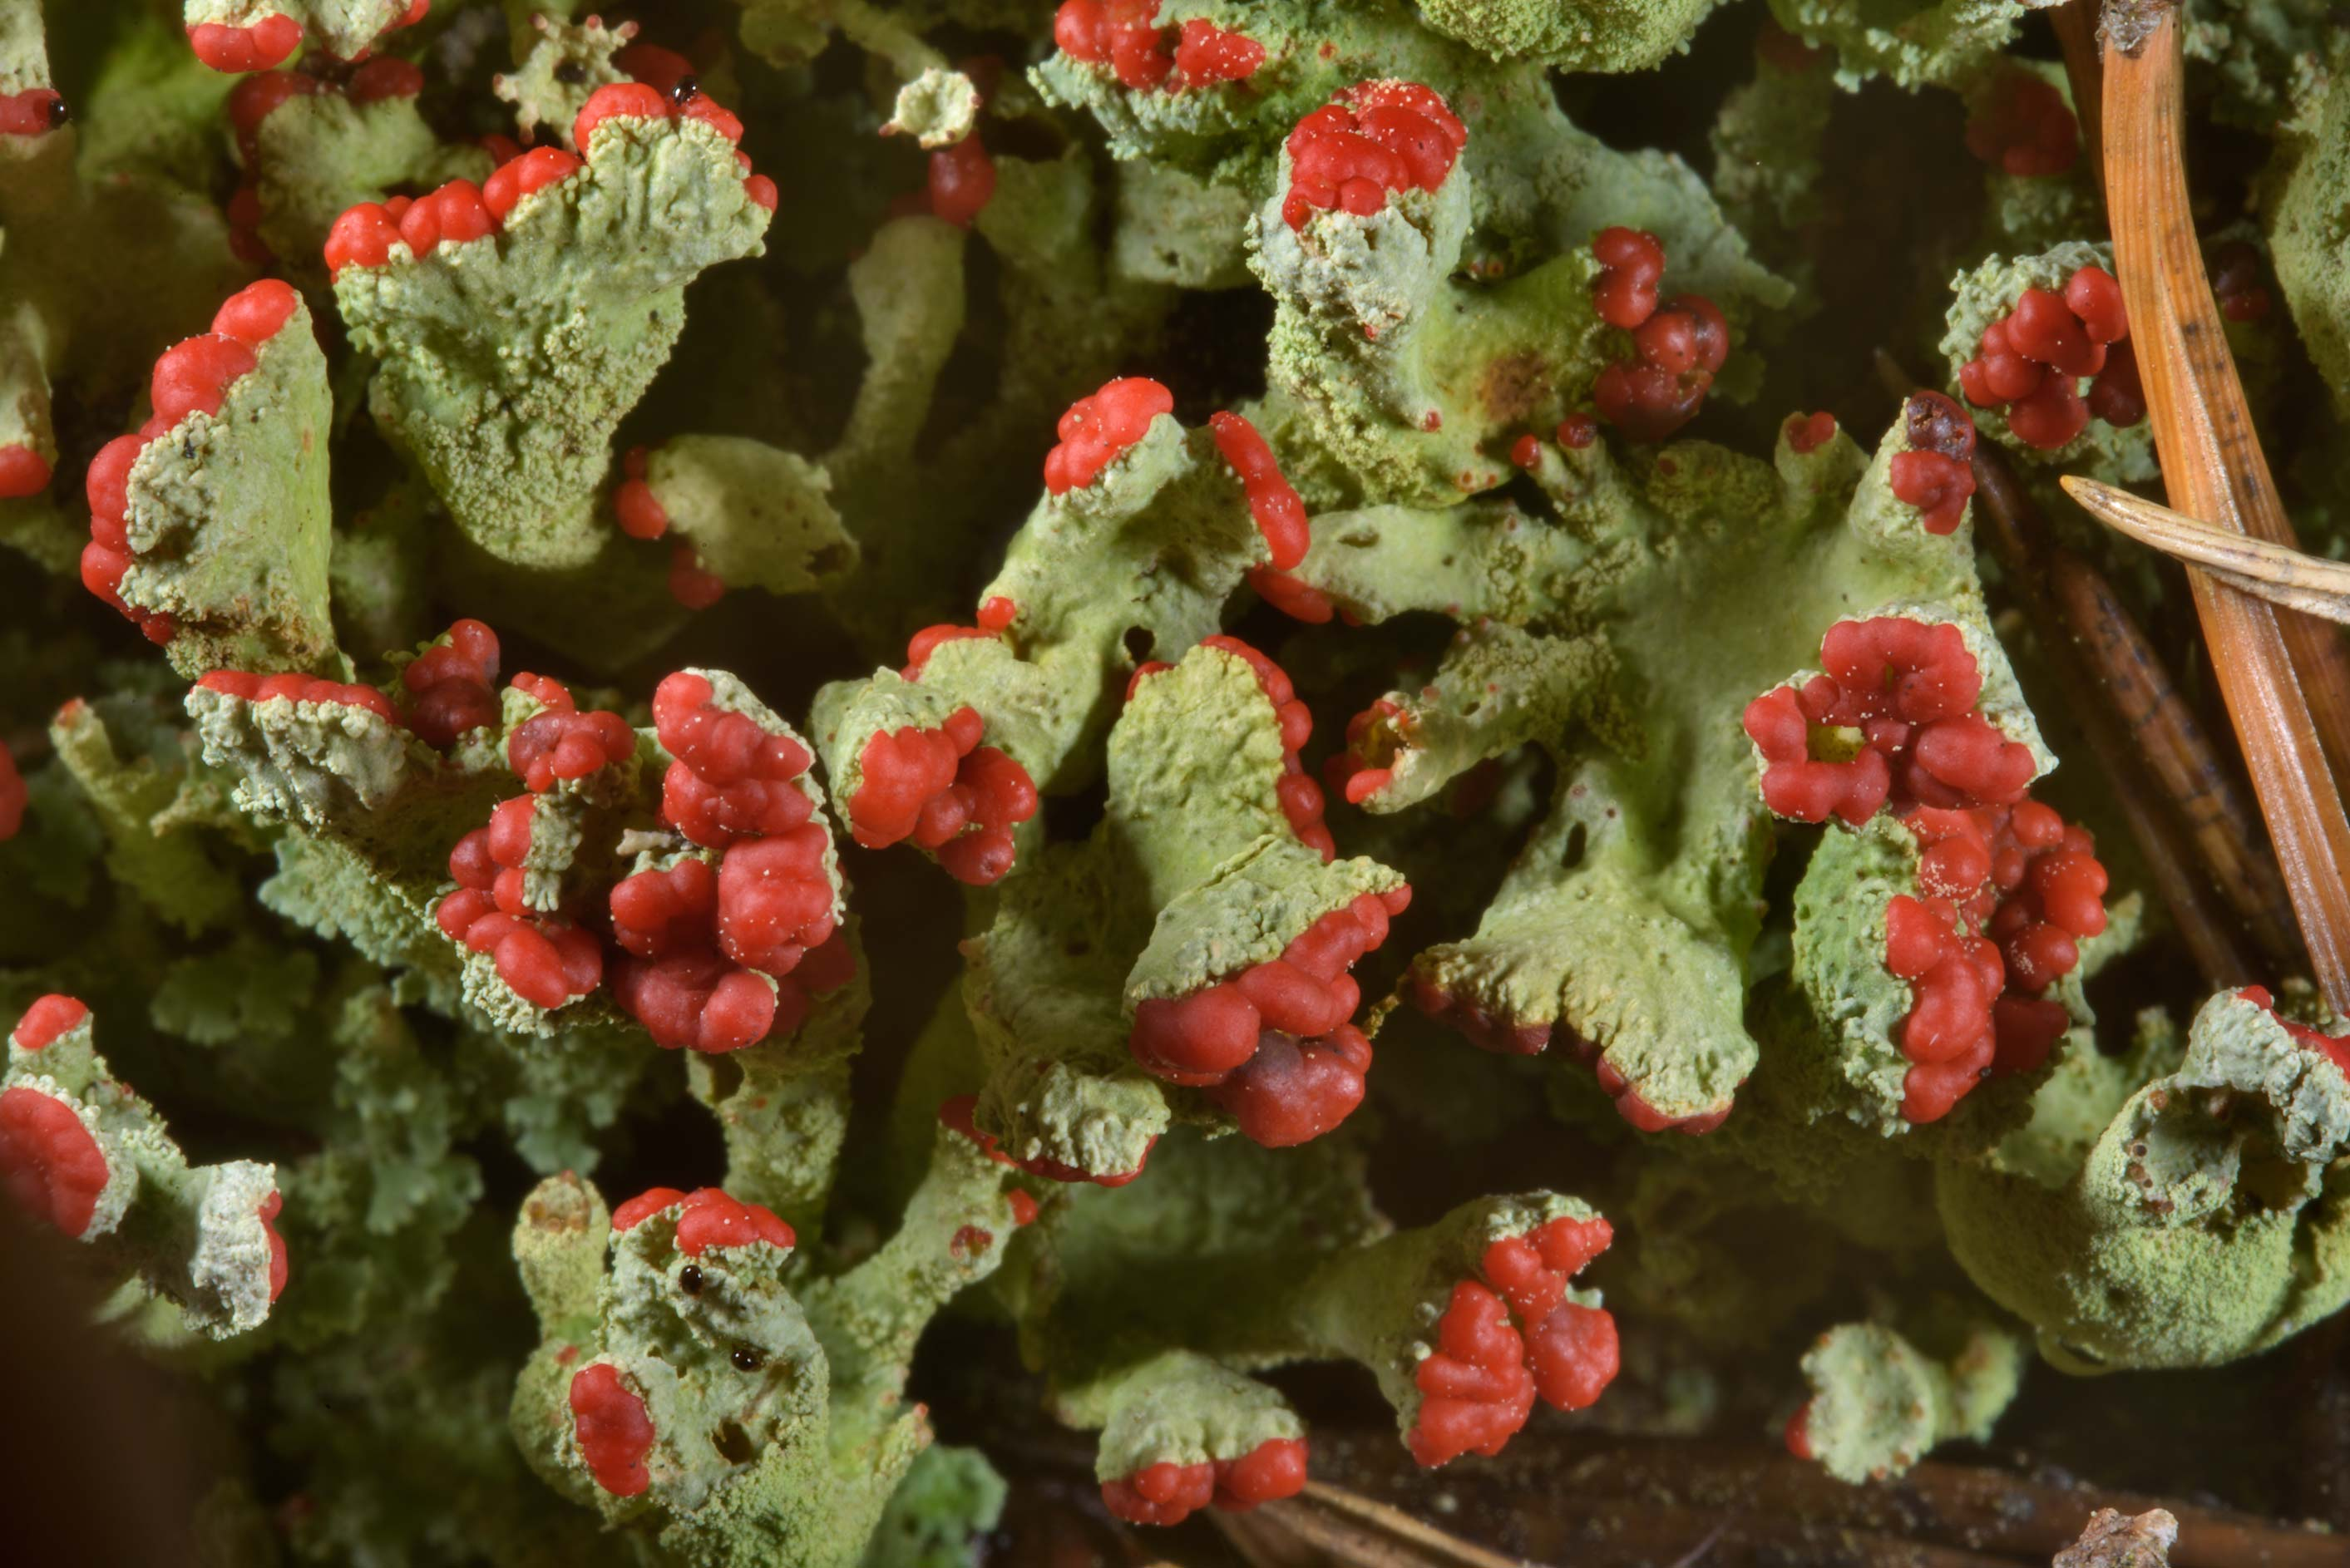 Cladonia lichen with red spore reproducing organs...miles south from St.Petersburg. Russia